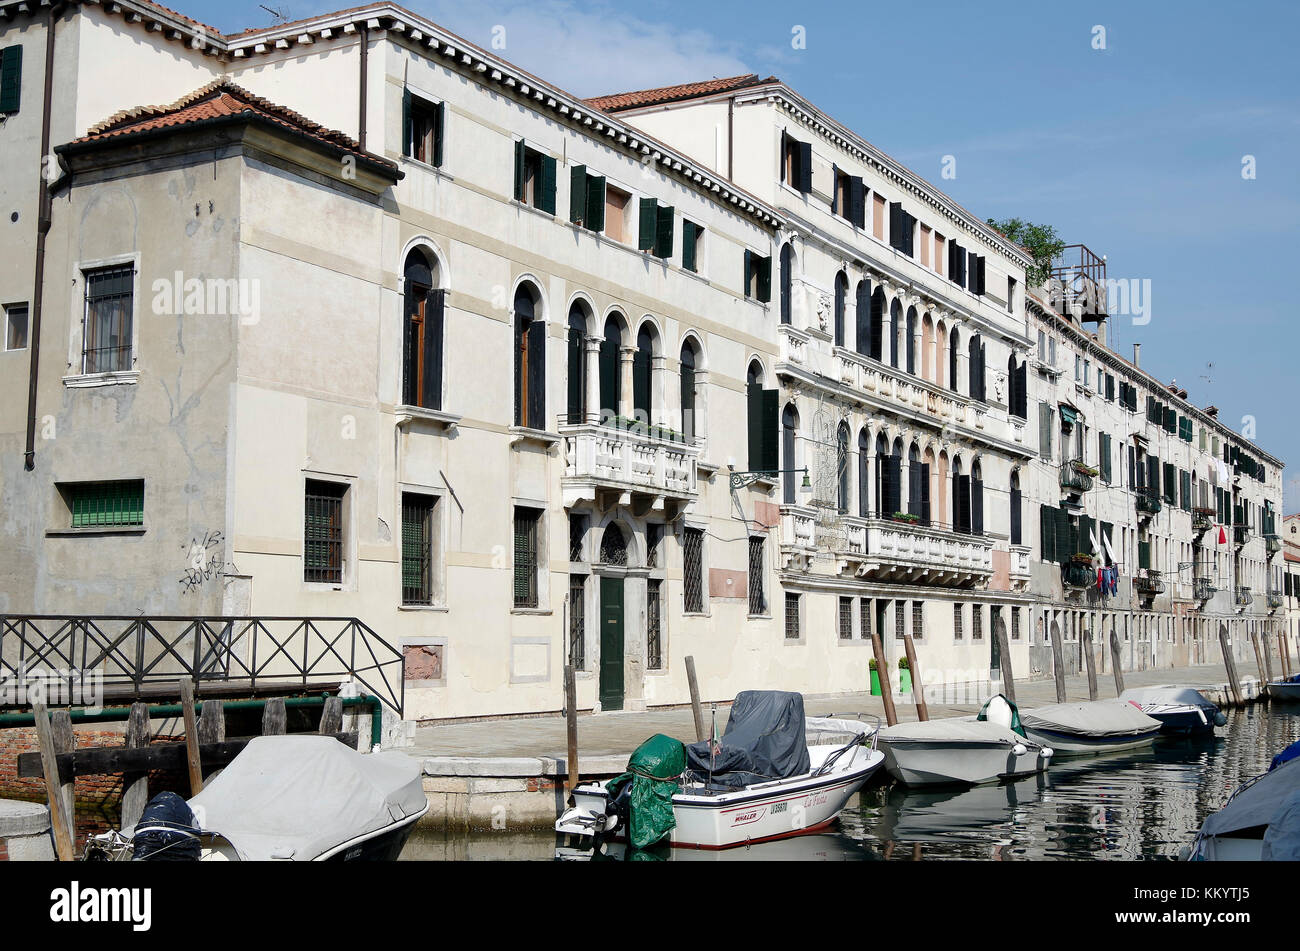 Ca Rizzi and Apartment building, on the Fondamenta de Ca' Rizzi, Venice, Italy Stock Photo